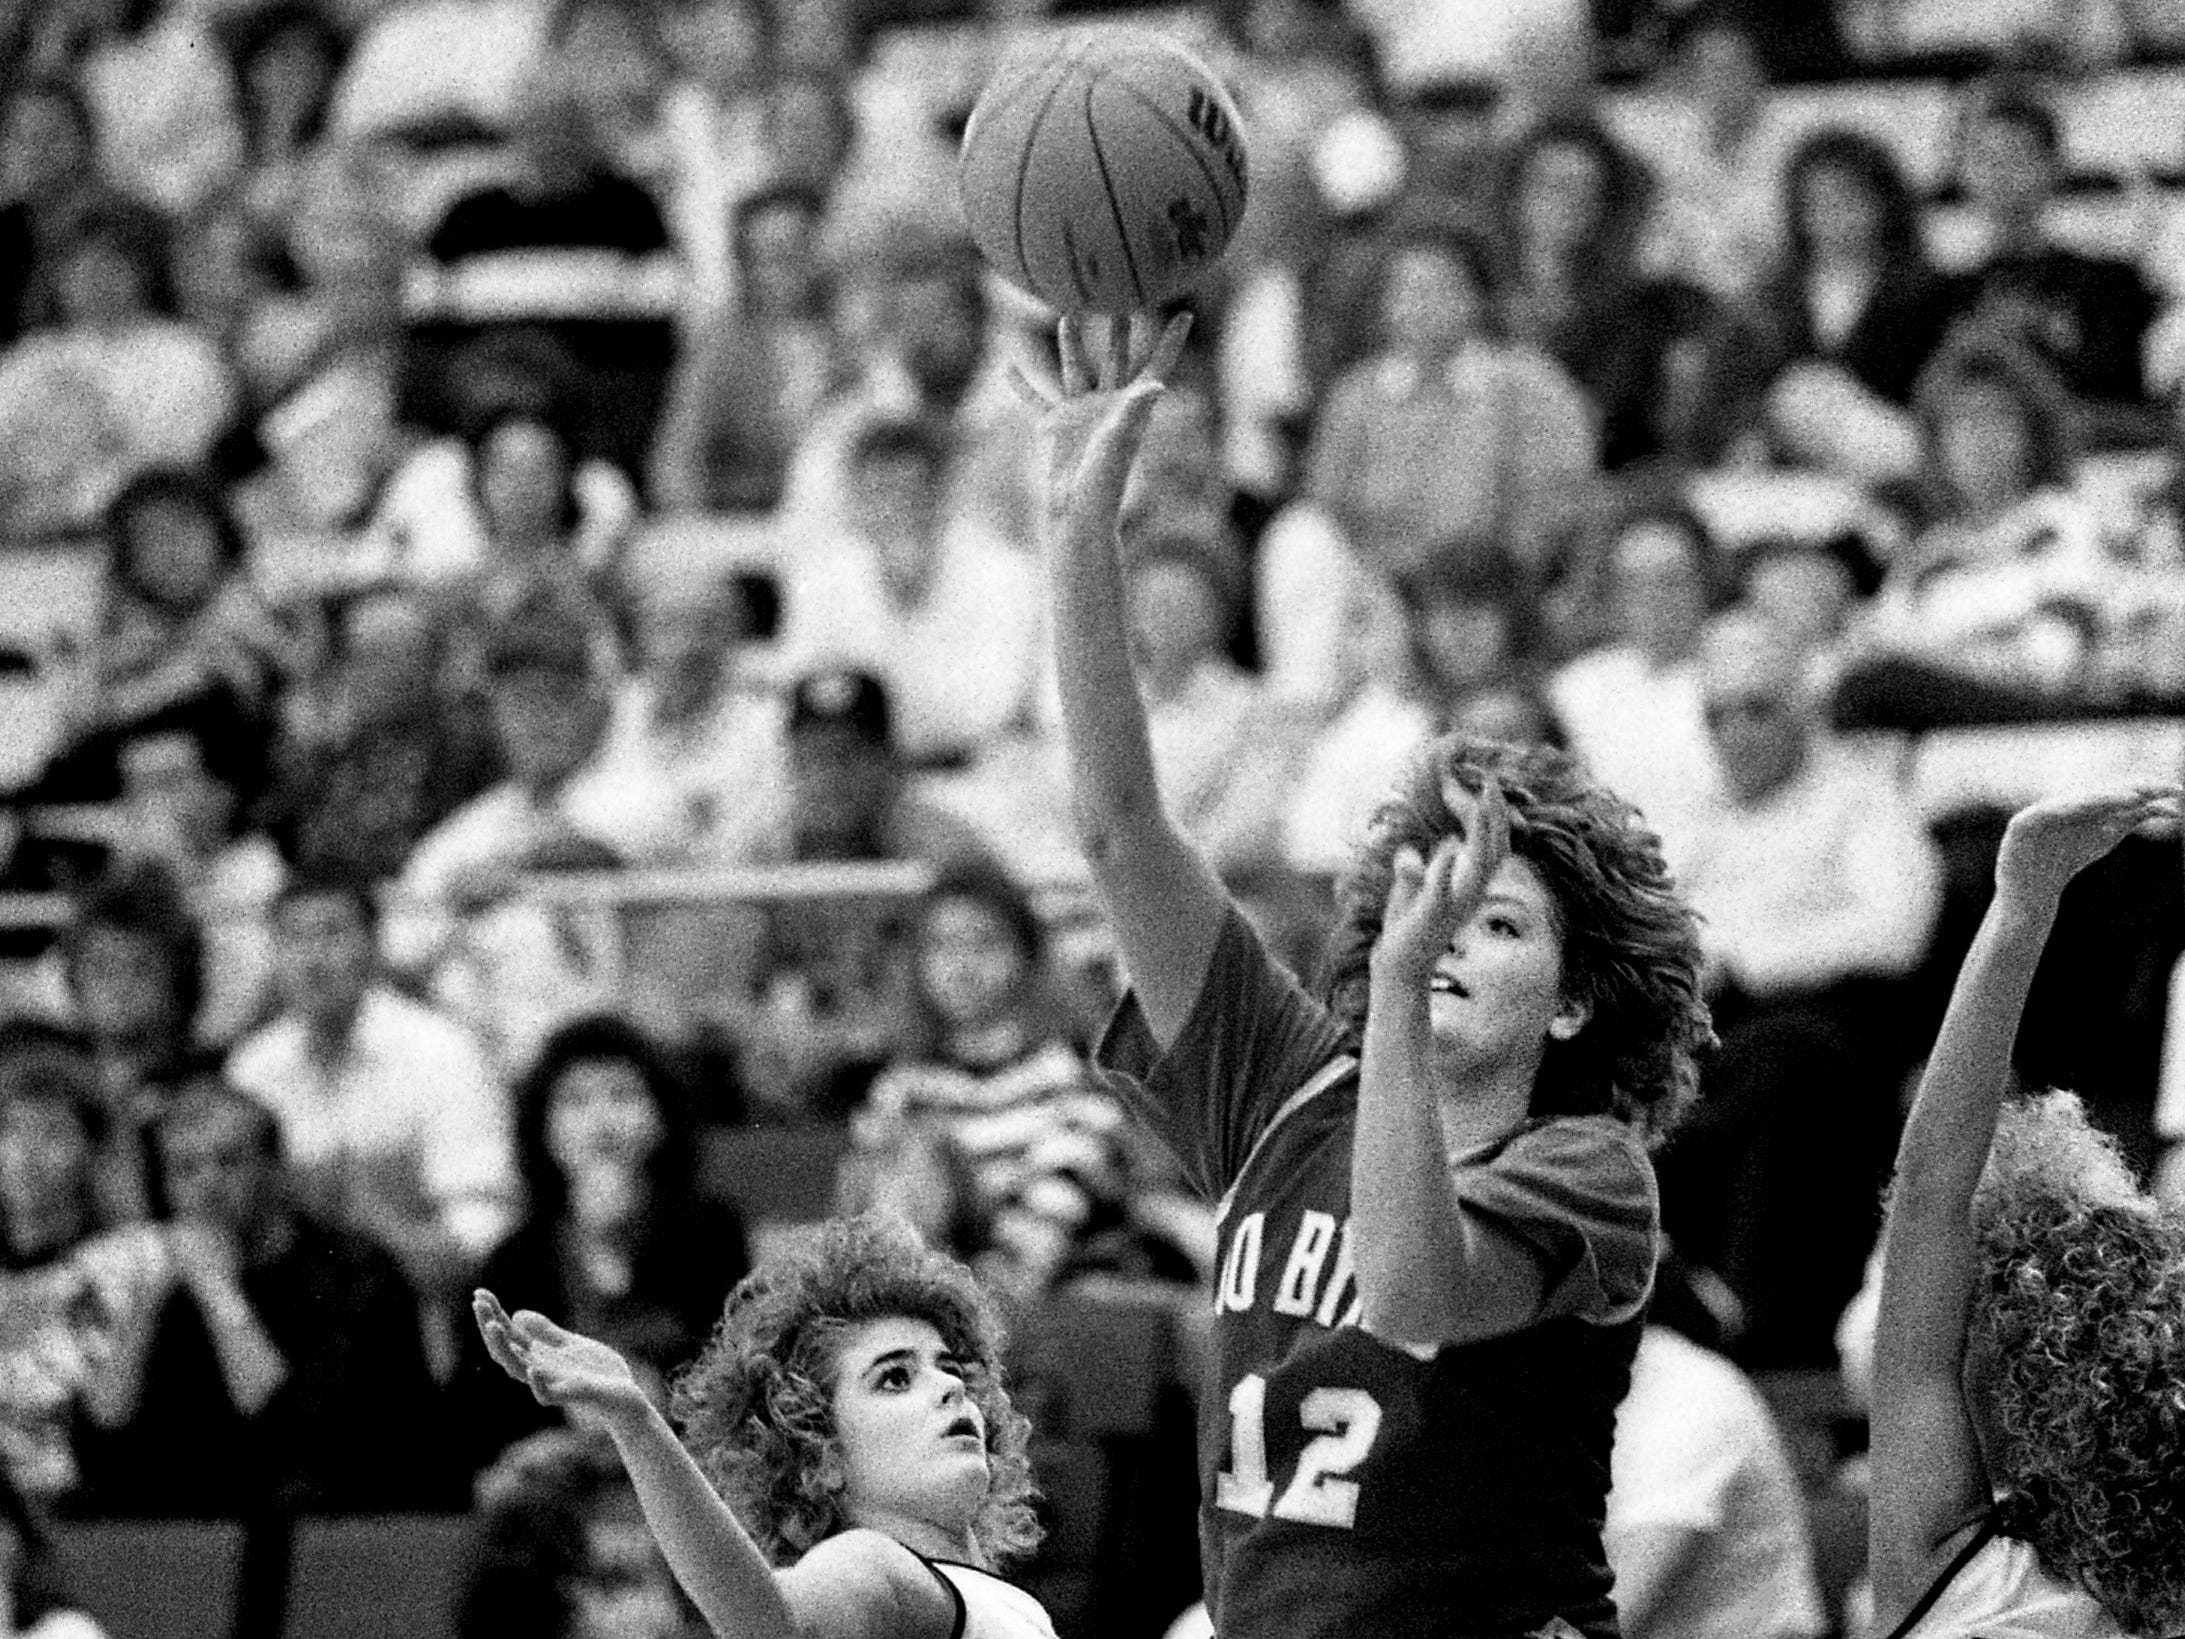 Mary Frank Fletcher (12) of Jo Byrns High scores two of her 11 points over defender Annette Aaron of Pickett County High. But it was enough as Pickett County won 62-60 in the opening game of the TSSAA Class A State tournament at MTSU's Murphy Center on March 8, 1989.